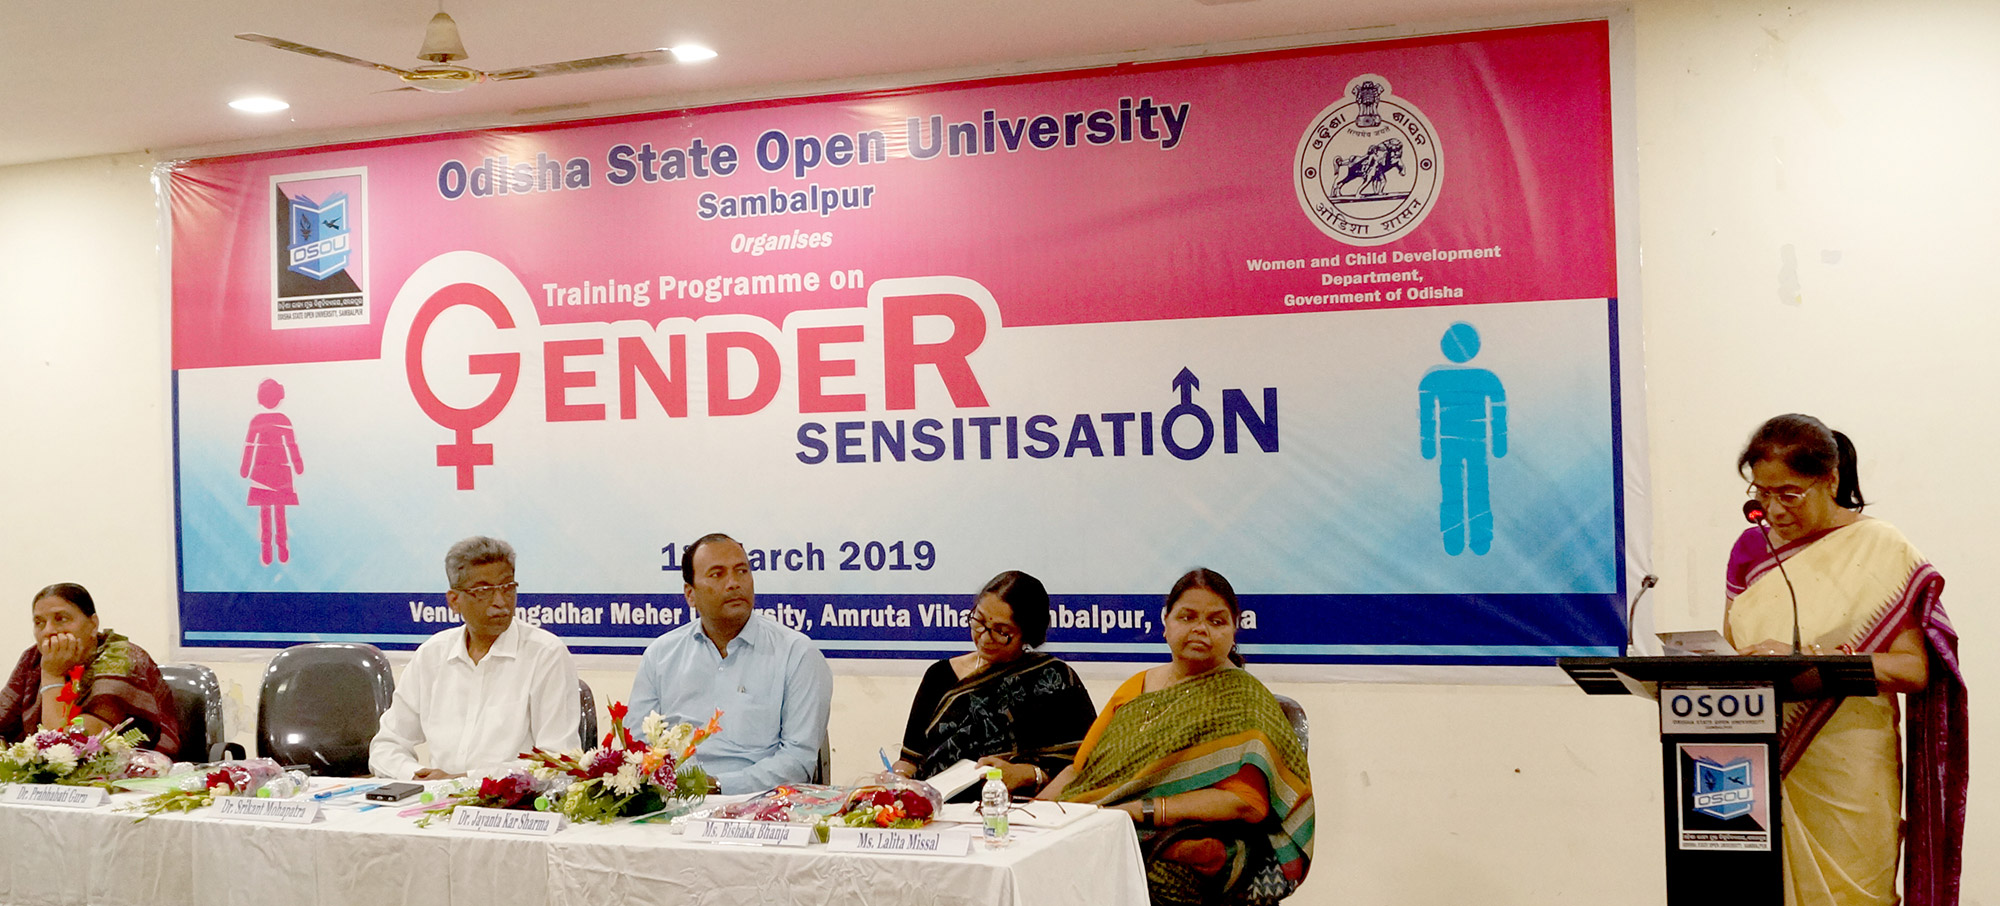 GENDER SENSITISATION TRAINING PROGRAMME